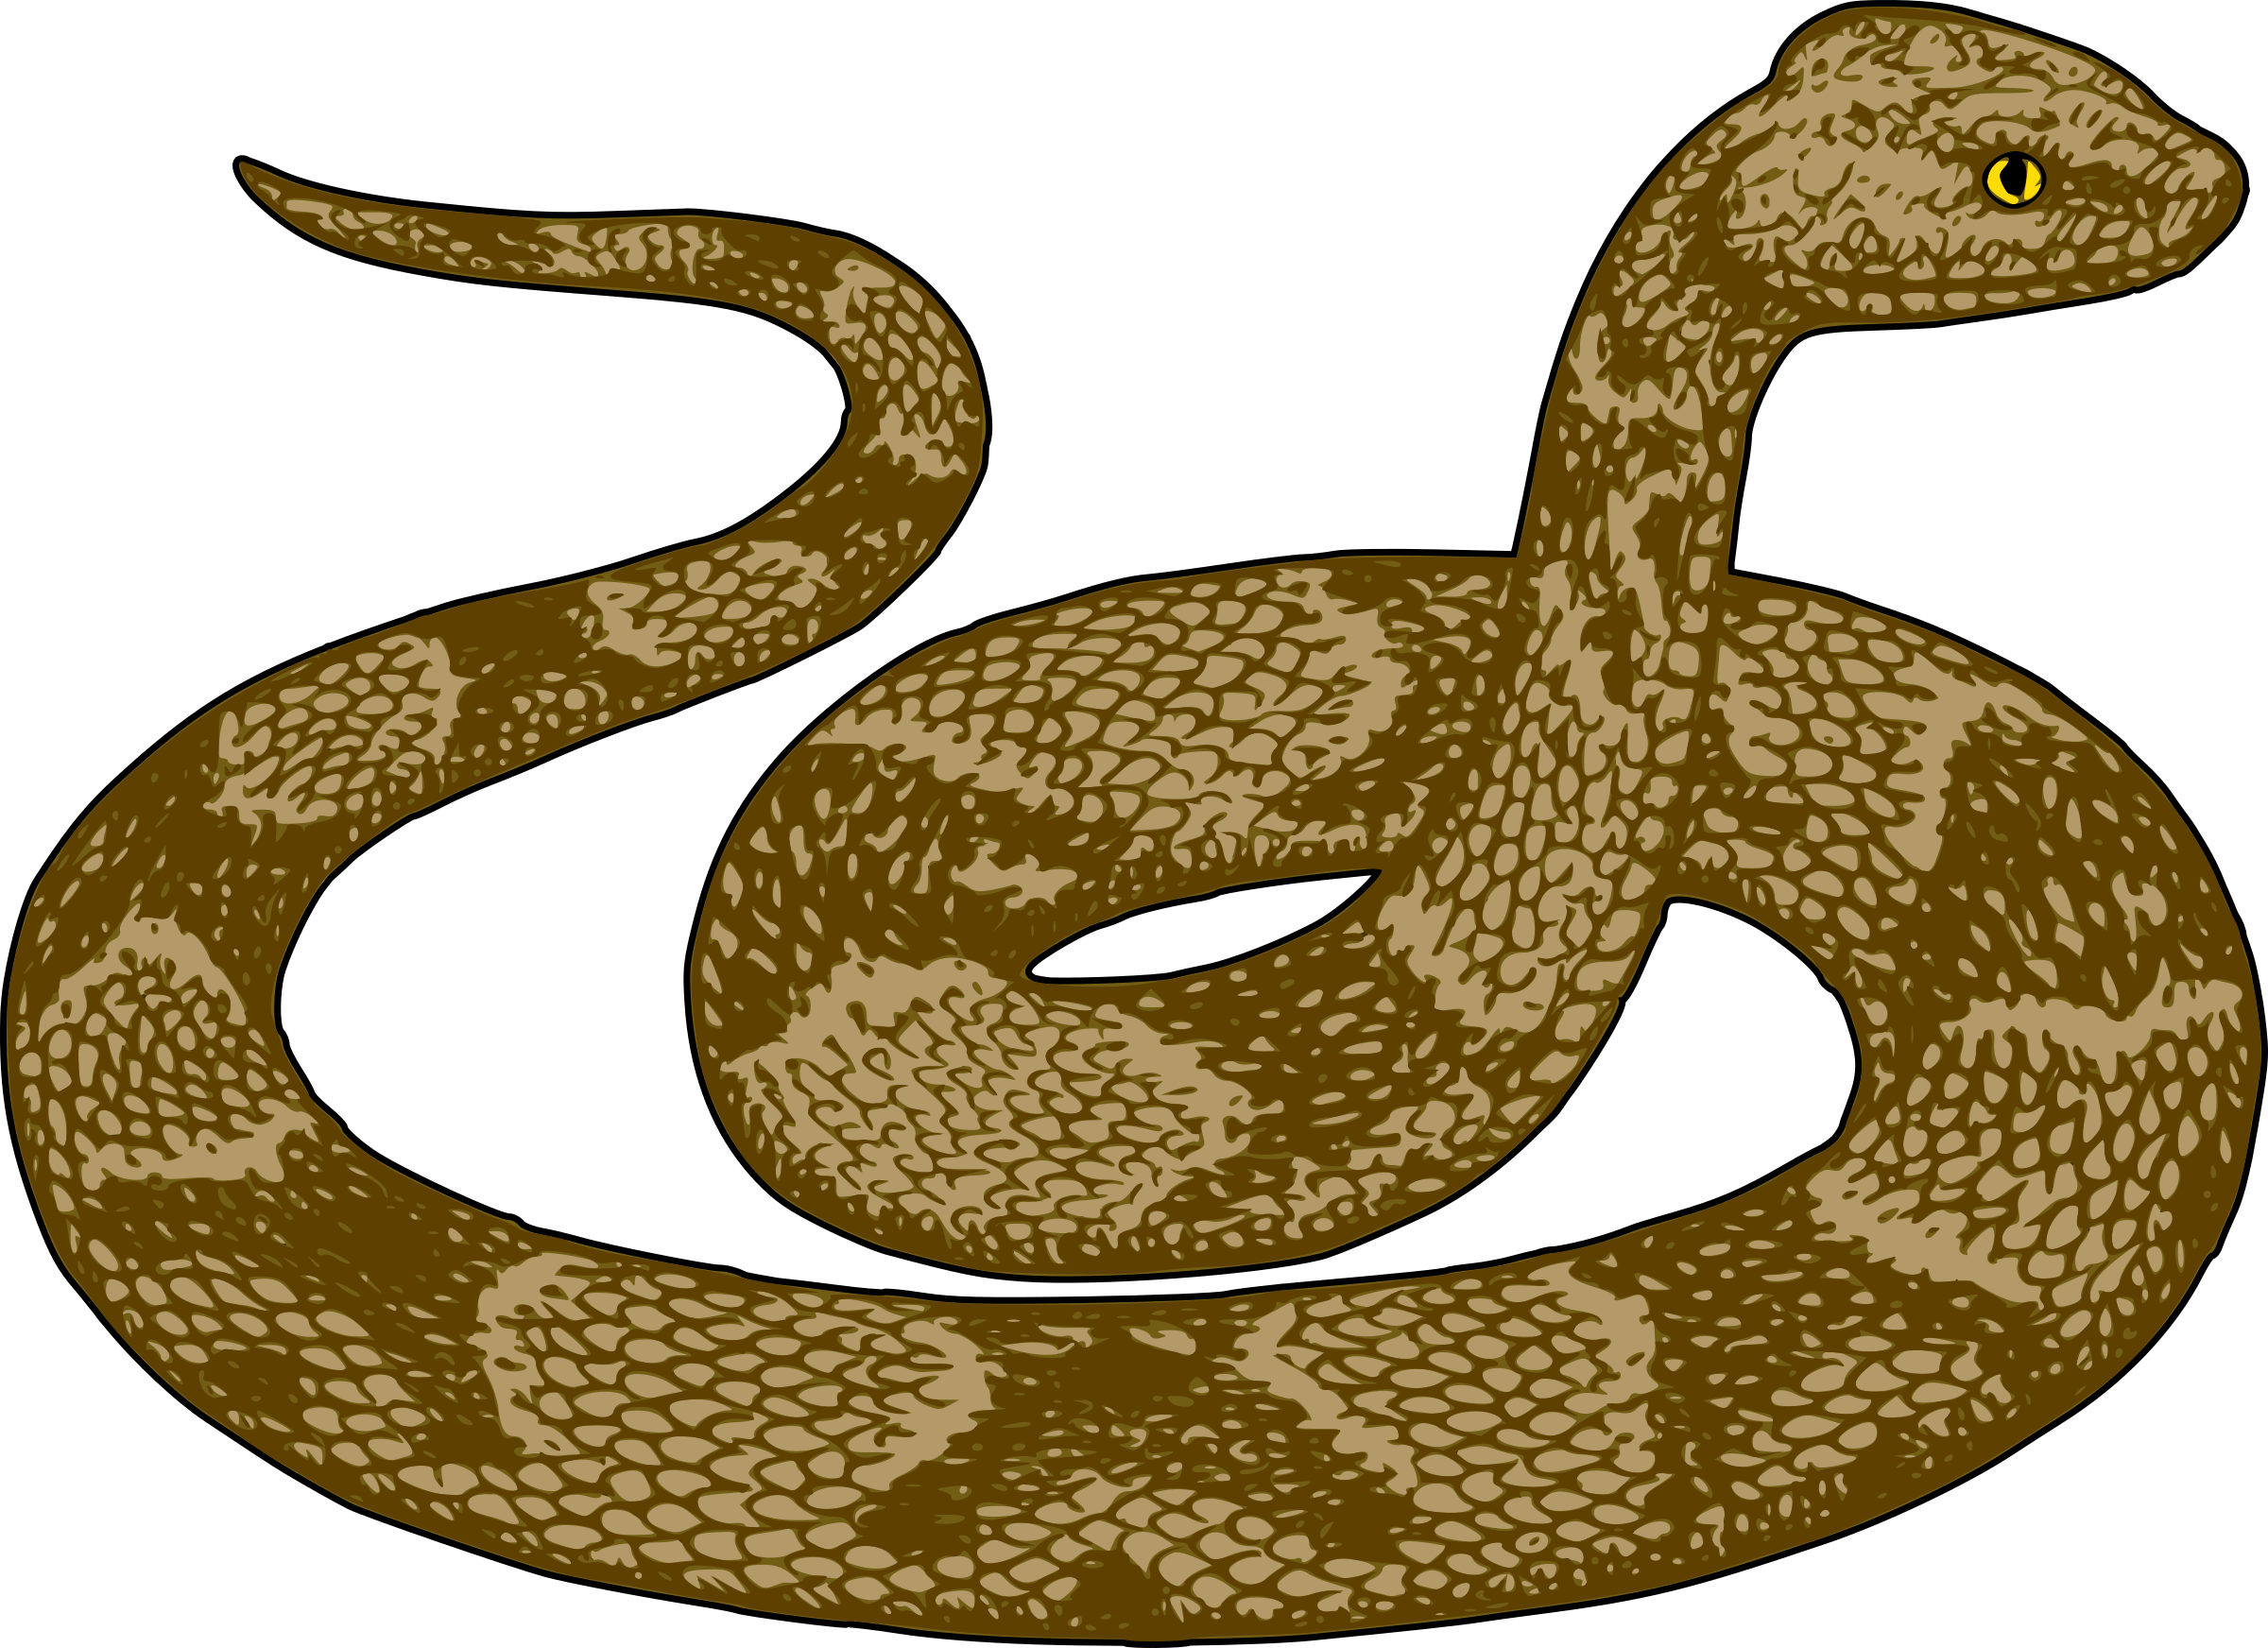 Snake clipart giant snake. Big cliparts zone